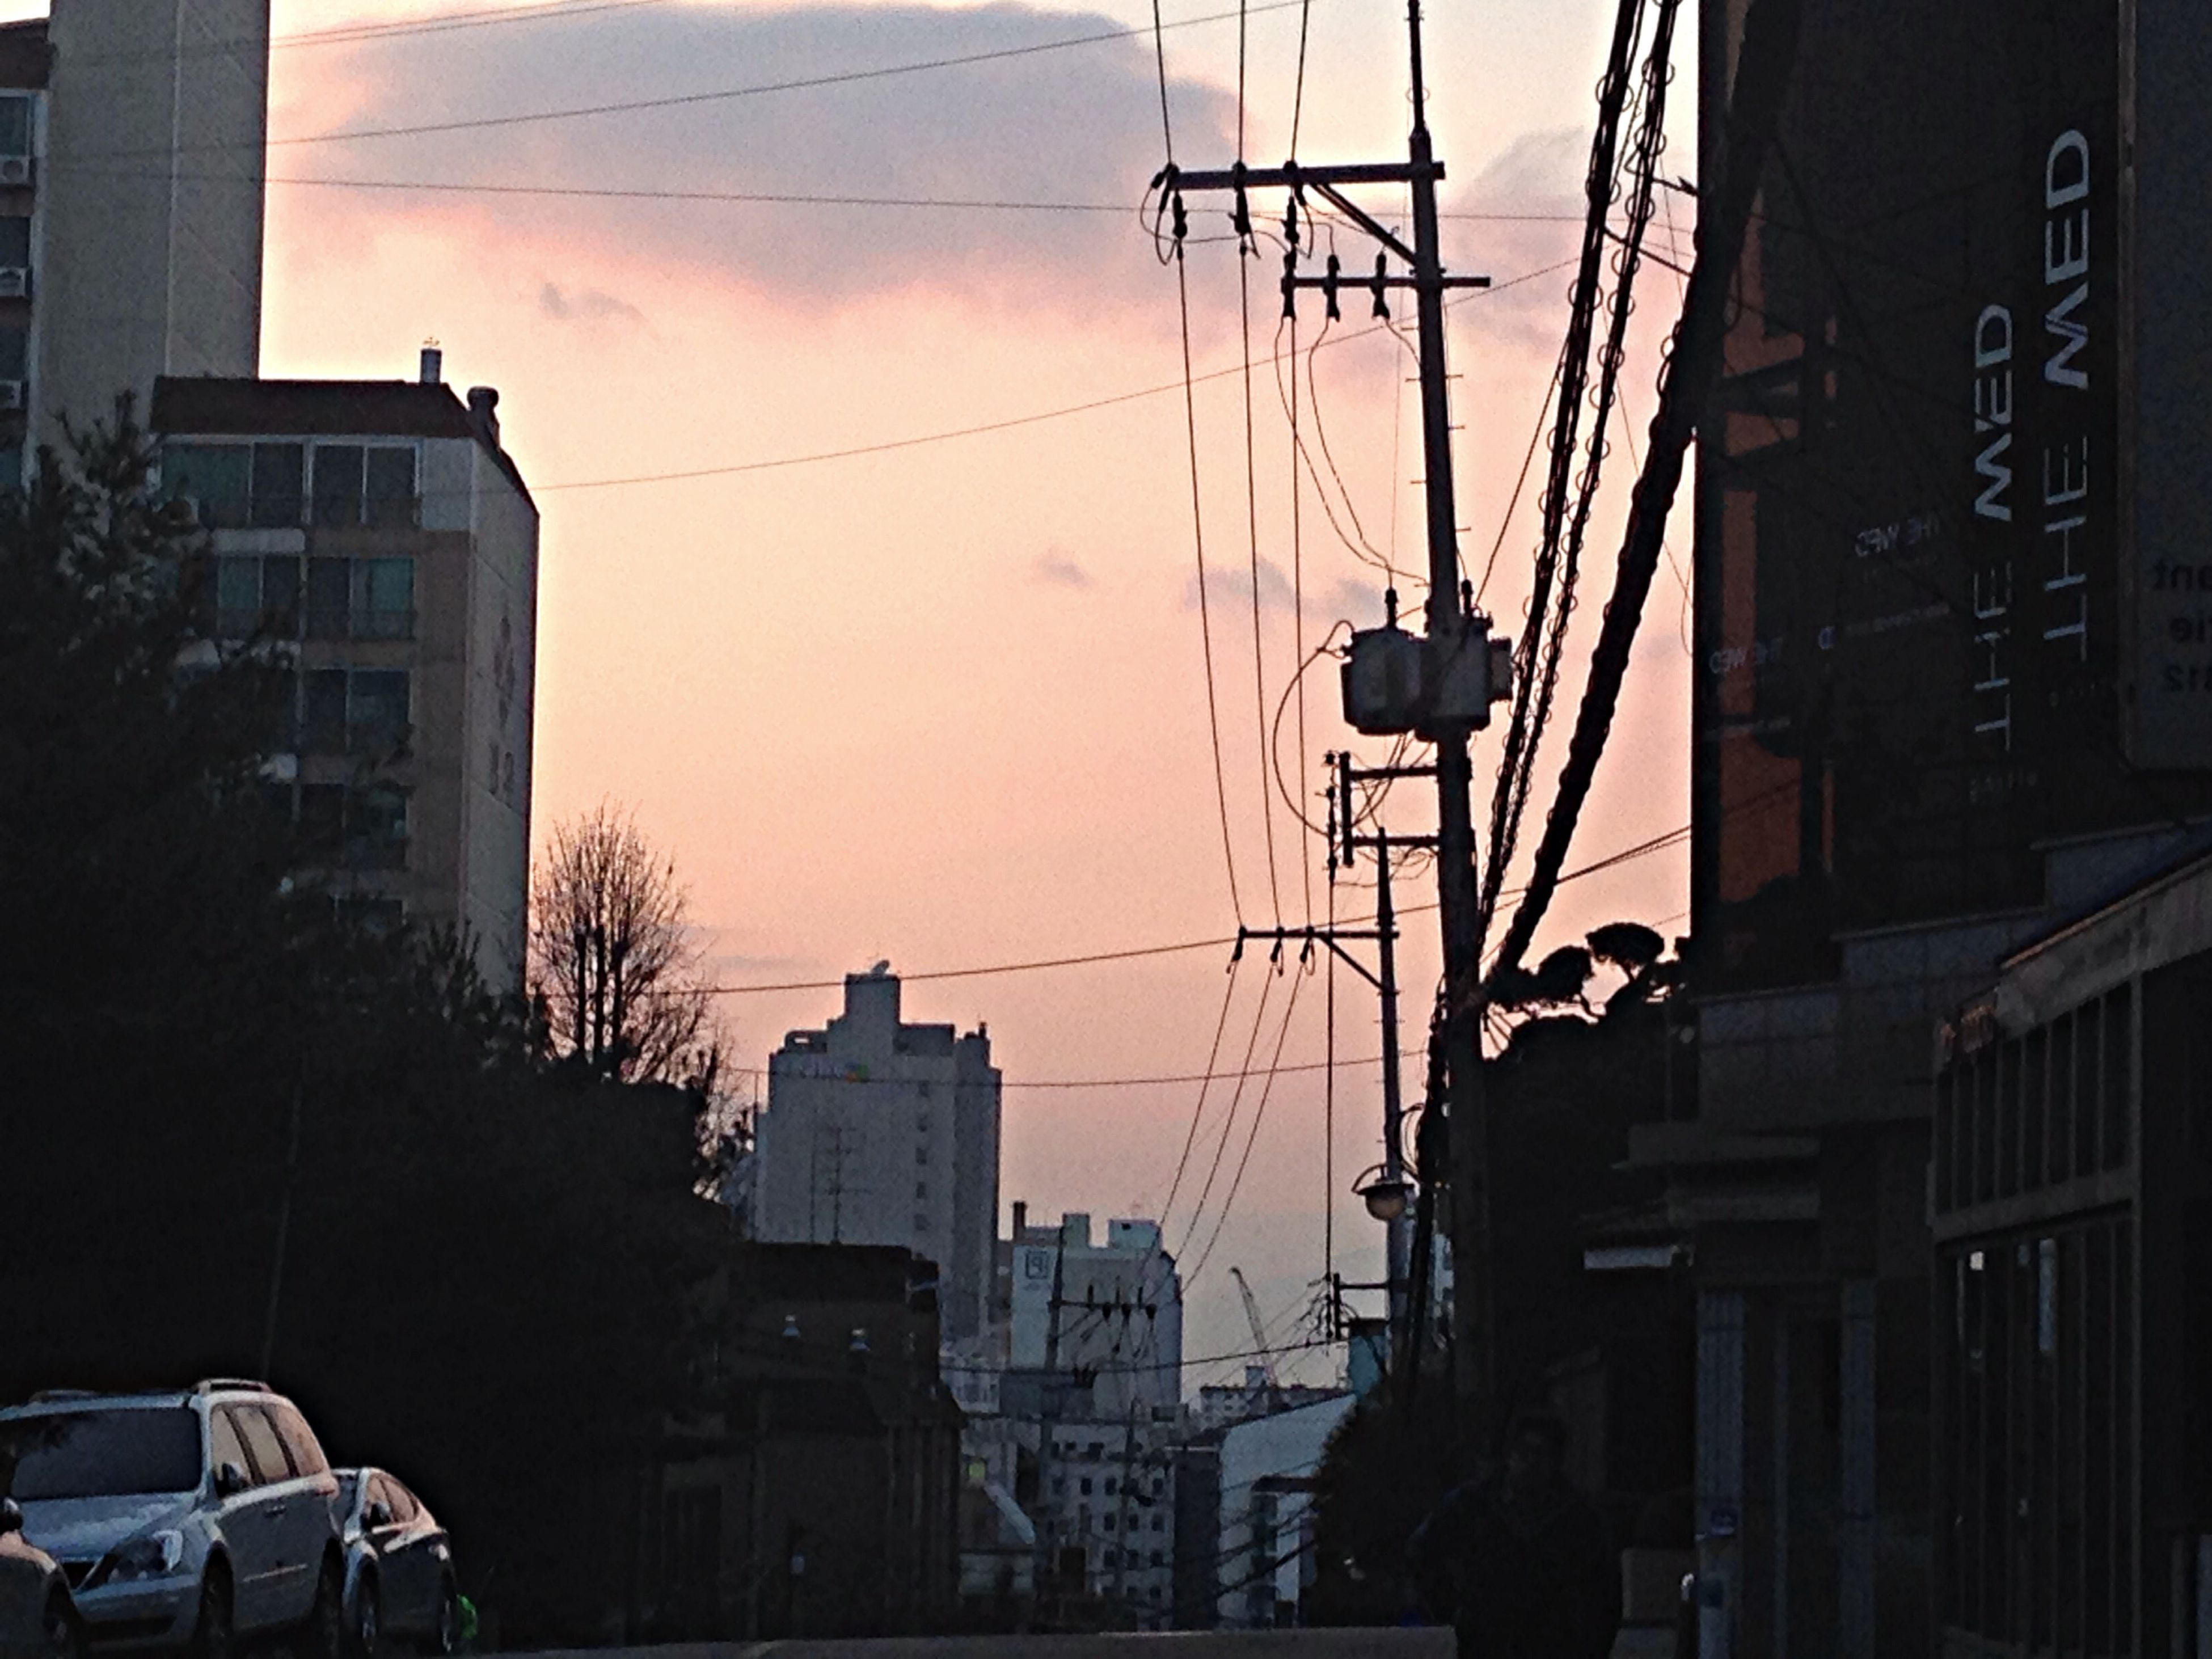 building exterior, architecture, built structure, city, transportation, power line, car, mode of transport, land vehicle, street, sky, electricity pylon, cable, building, city life, sunset, residential building, residential structure, city street, street light